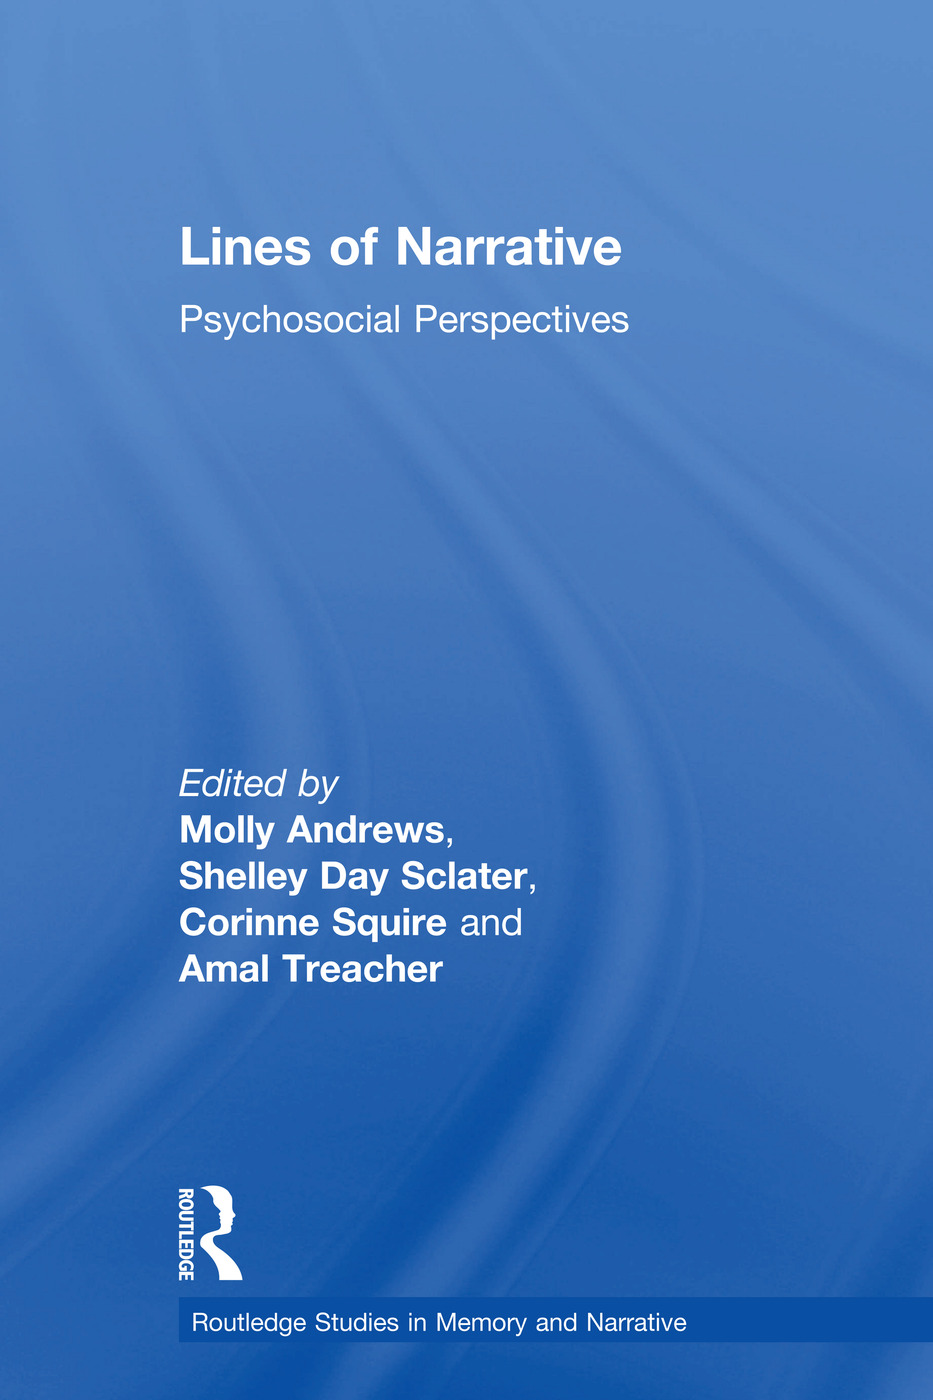 Lines of Narrative